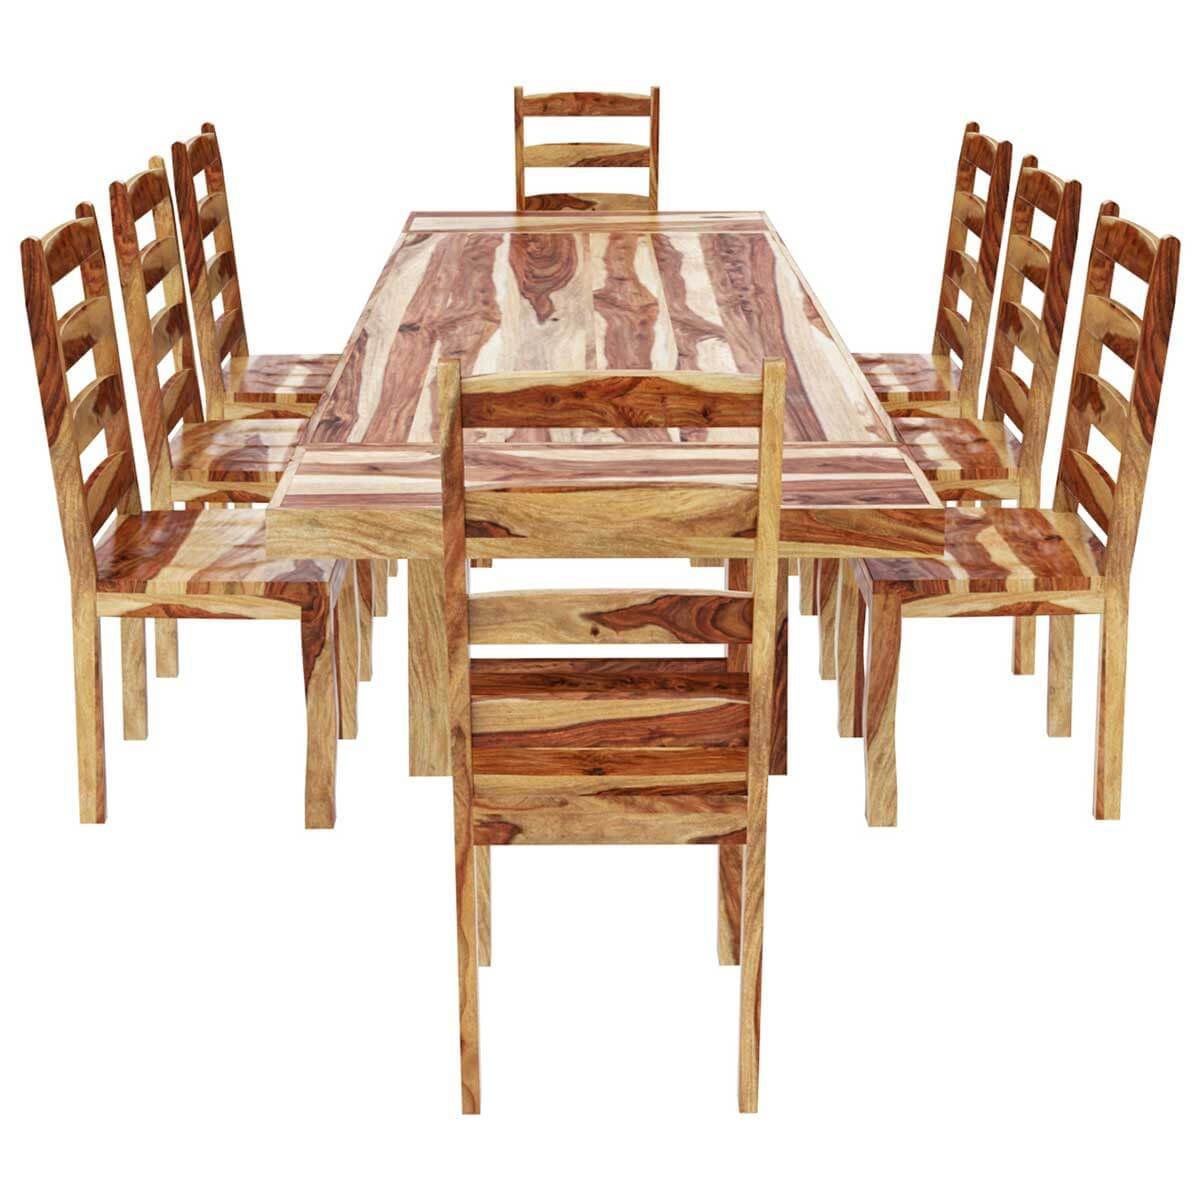 Bluffton Classic Solid Rosewood Extension Dining Table  : 26981 from www.sierralivingconcepts.com size 1200 x 1200 jpeg 97kB